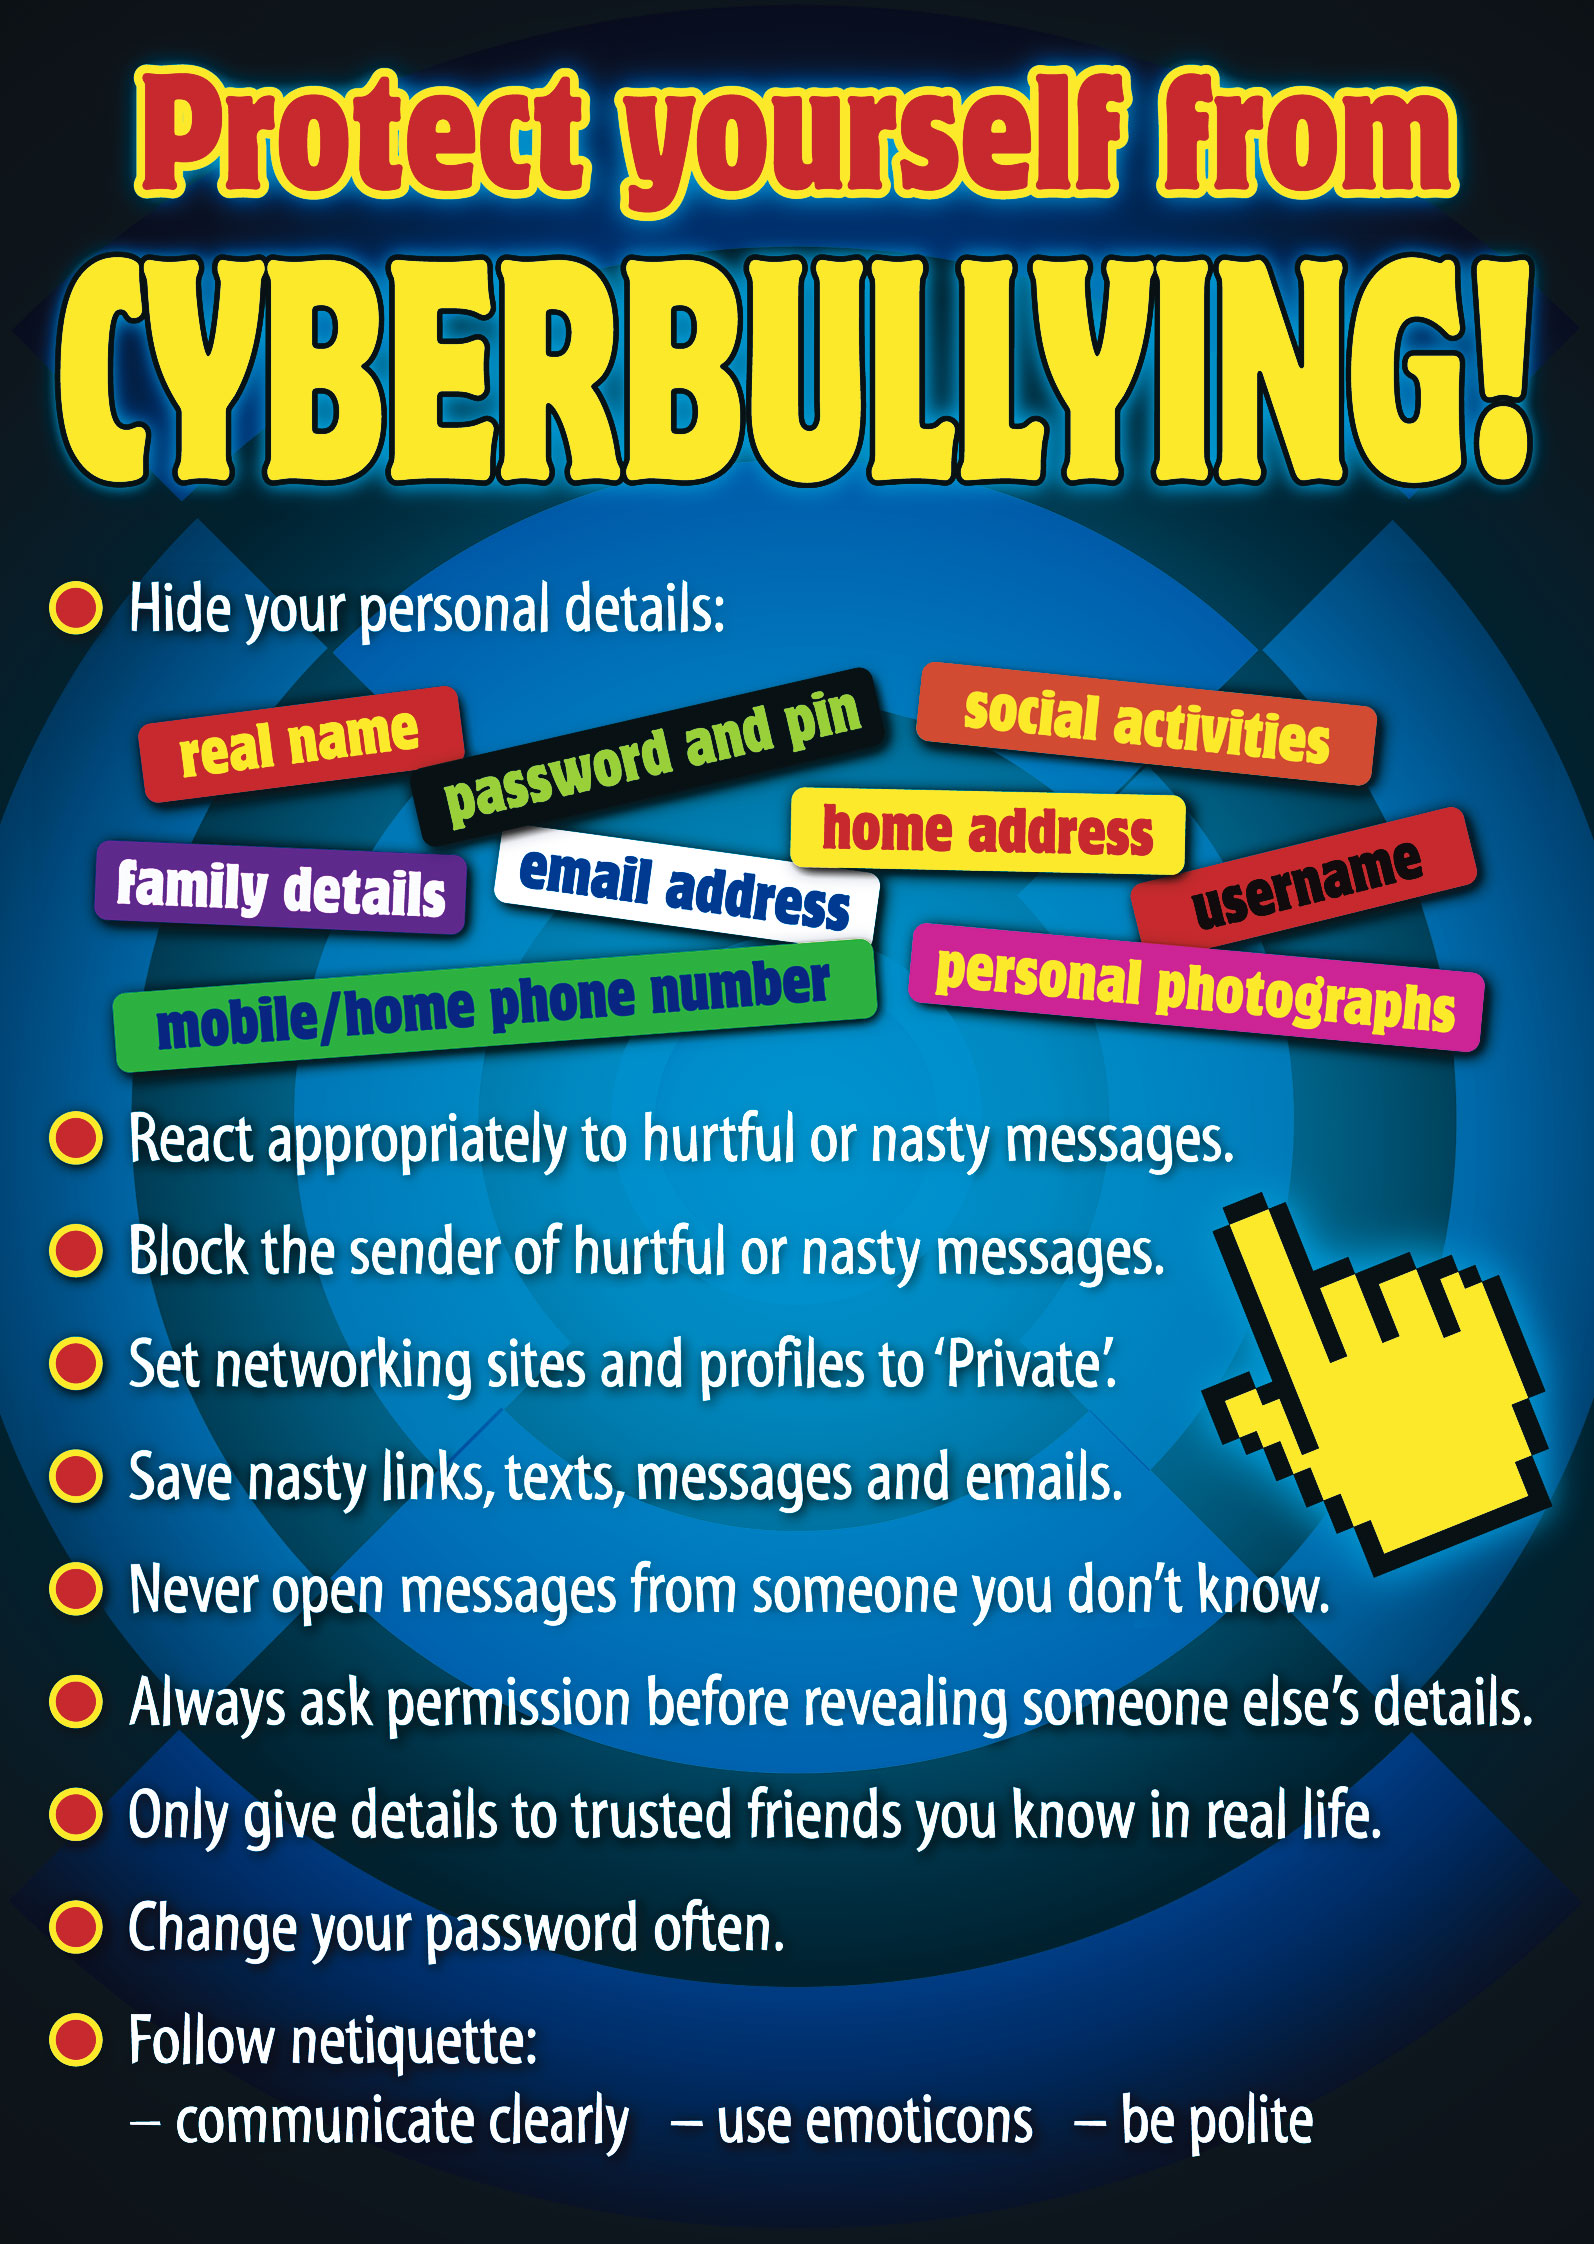 7086-Protect-from-Cyberbullying.ph70